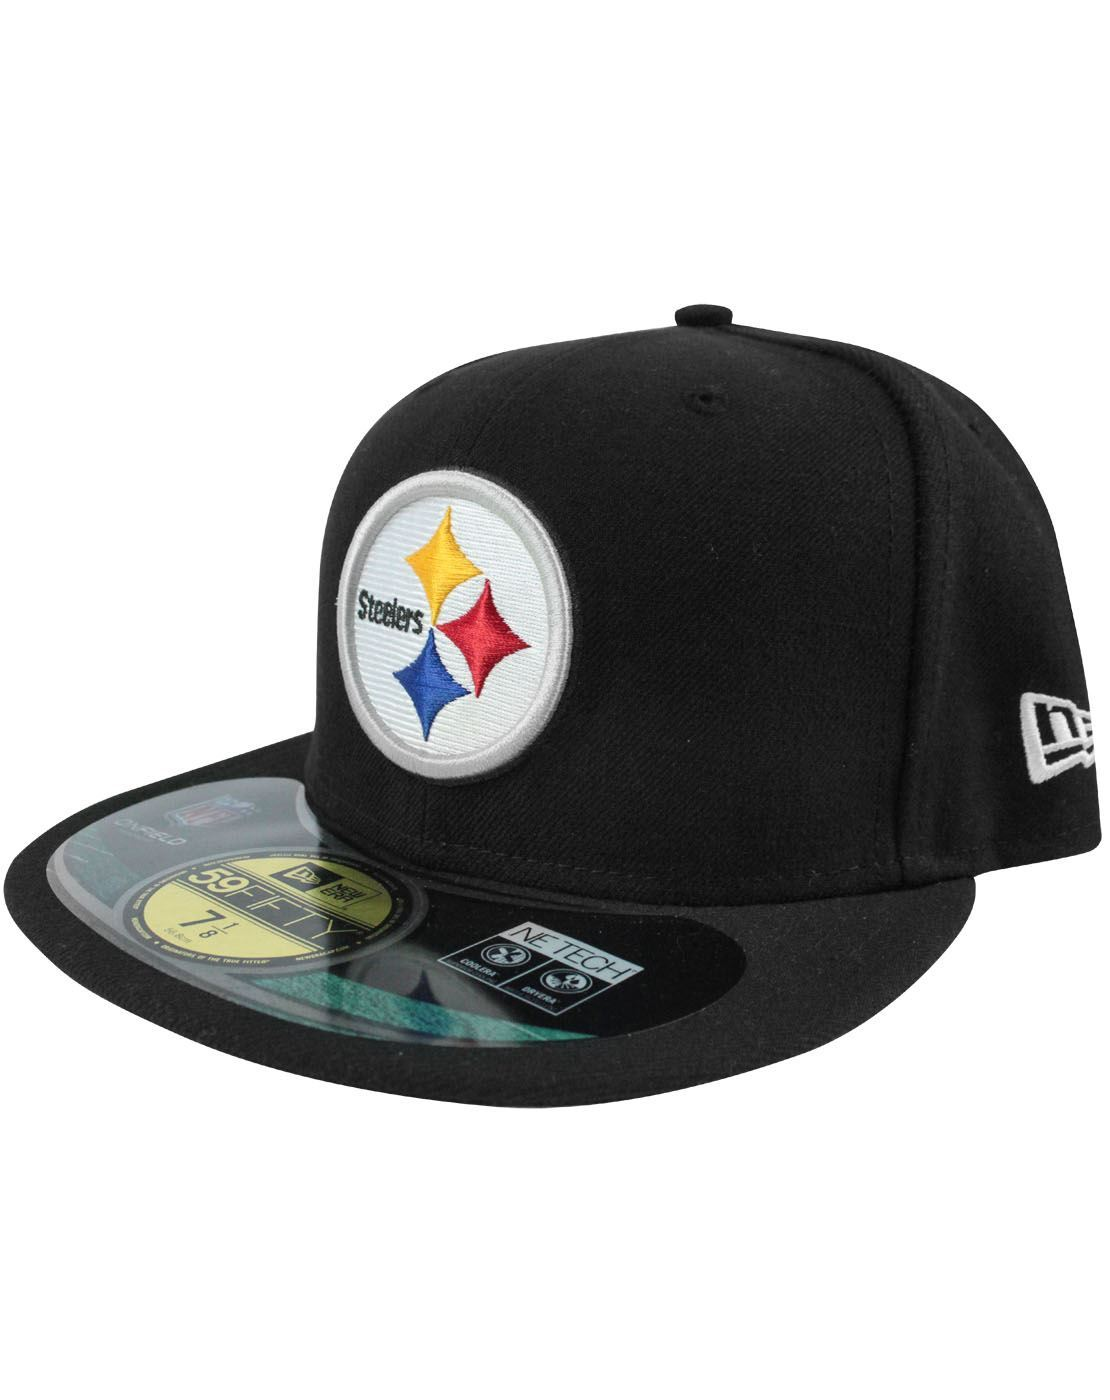 40da0544b New Era 59Fifty NFL Pittsburgh Steelers Cap – Vanilla Underground